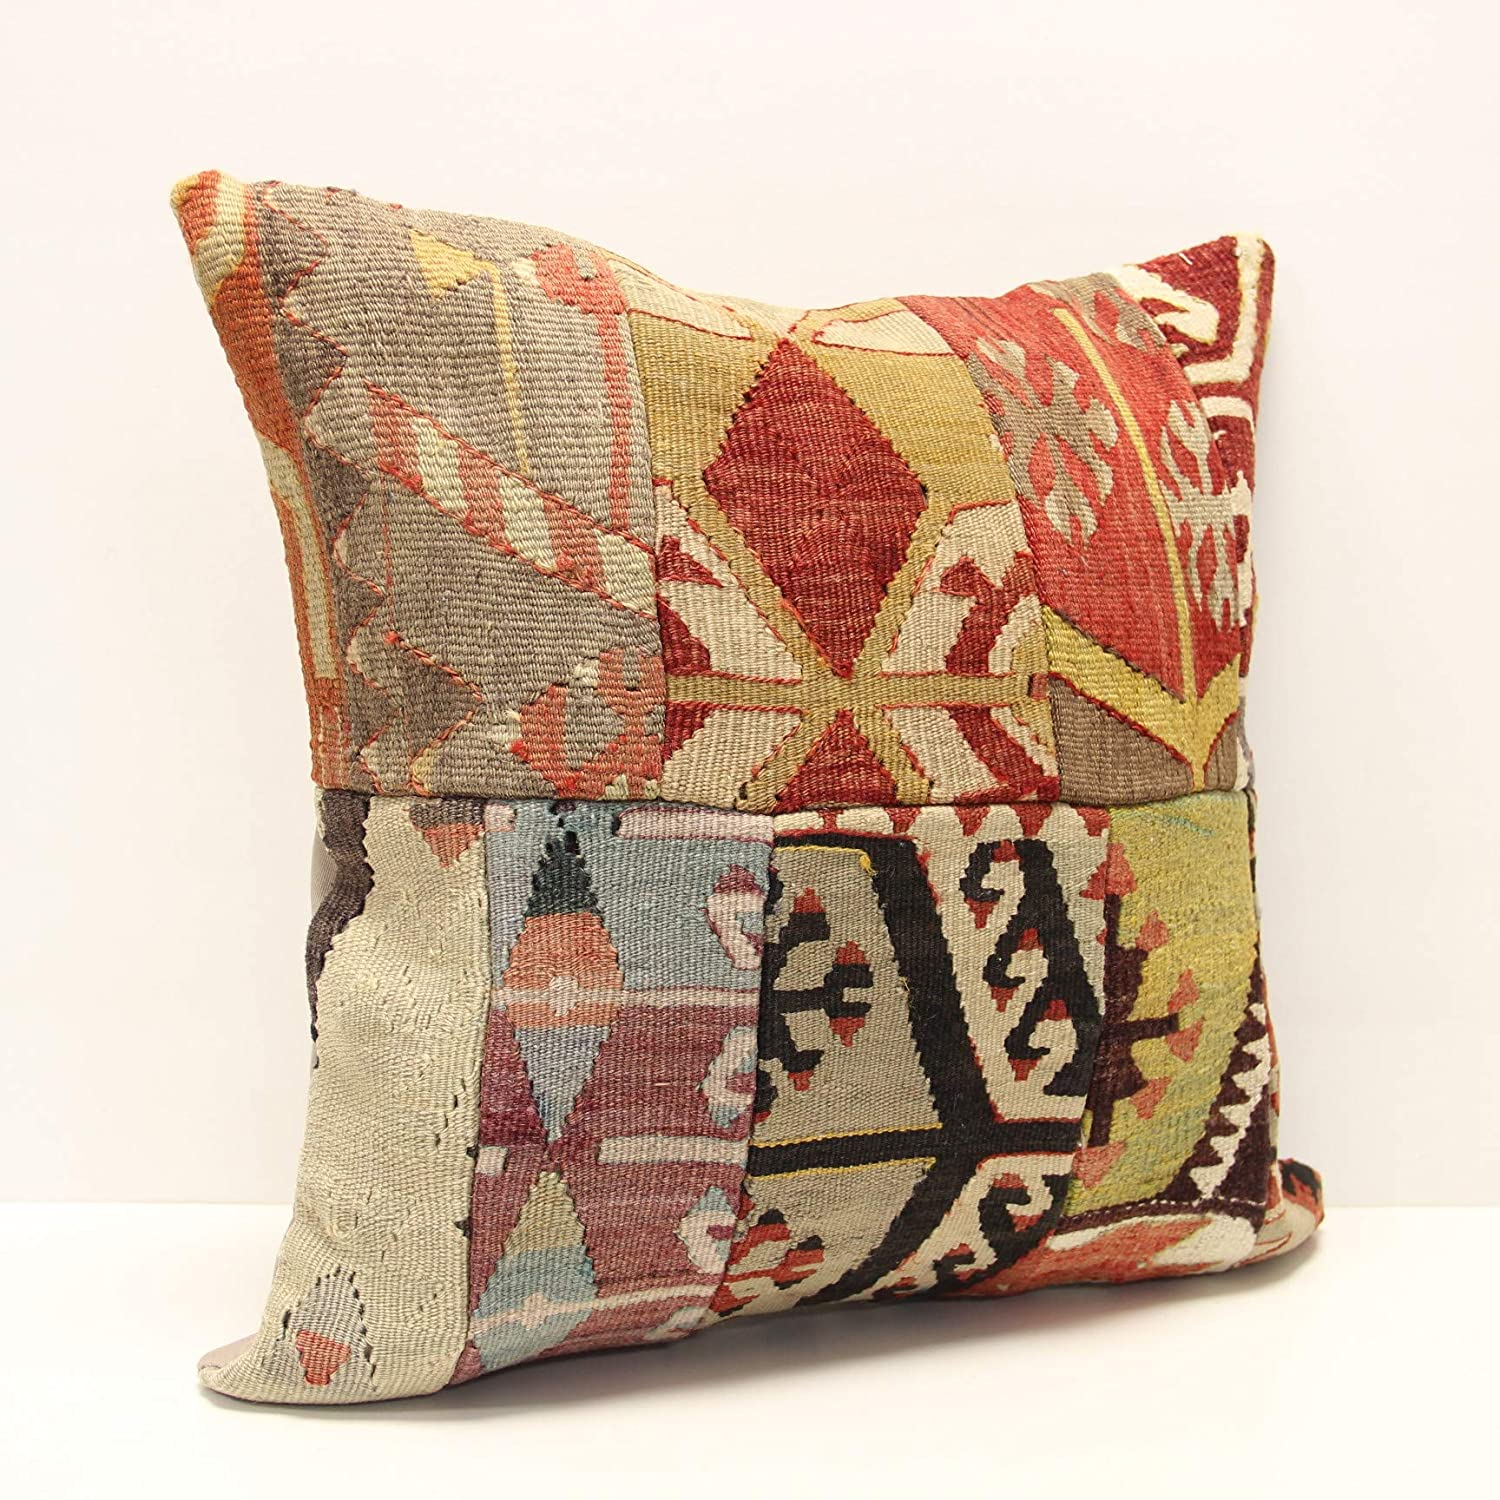 square kilim pillow cover.18x18Turkish handmade decorative soft color brown yellow red striped  home design boho cushion KB-46